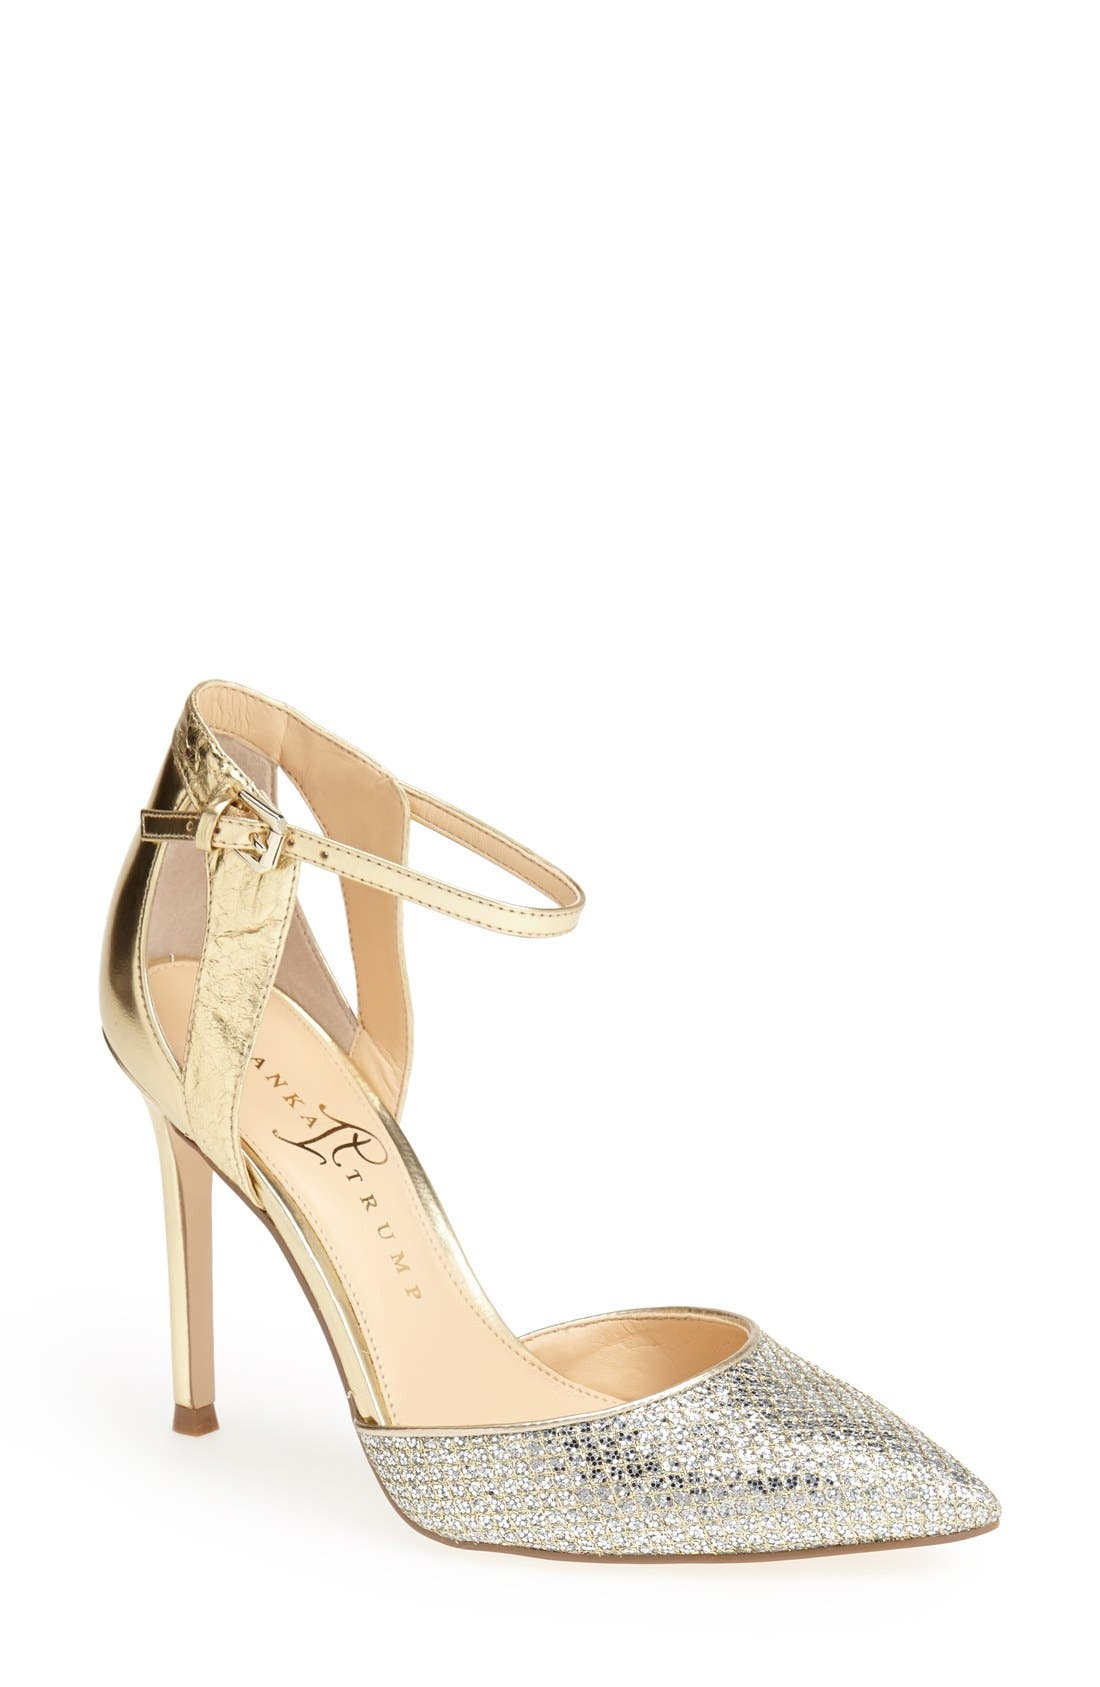 Main Image - Ivanka Trump 'Gees' Ankle Strap Pointed Toe Pump (Women)